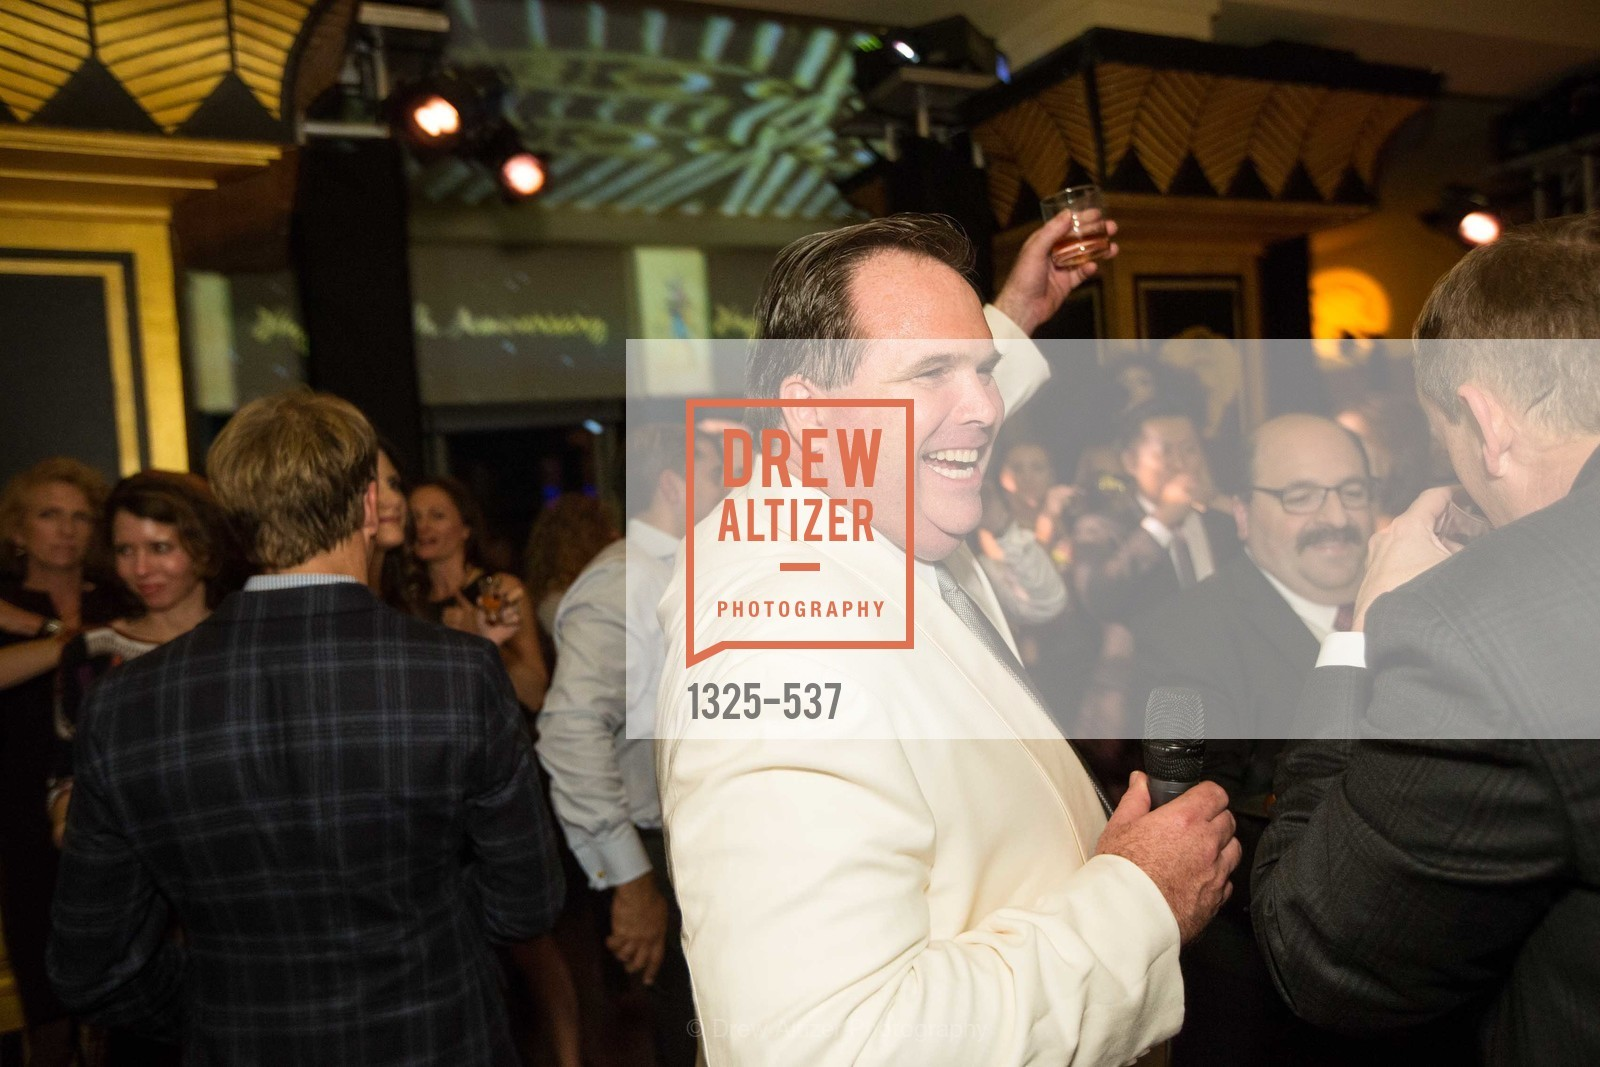 John Brady, TOP OF THE MARK'S 75TH Anniversary Party, US, November 6th, 2014,Drew Altizer, Drew Altizer Photography, full-service agency, private events, San Francisco photographer, photographer california